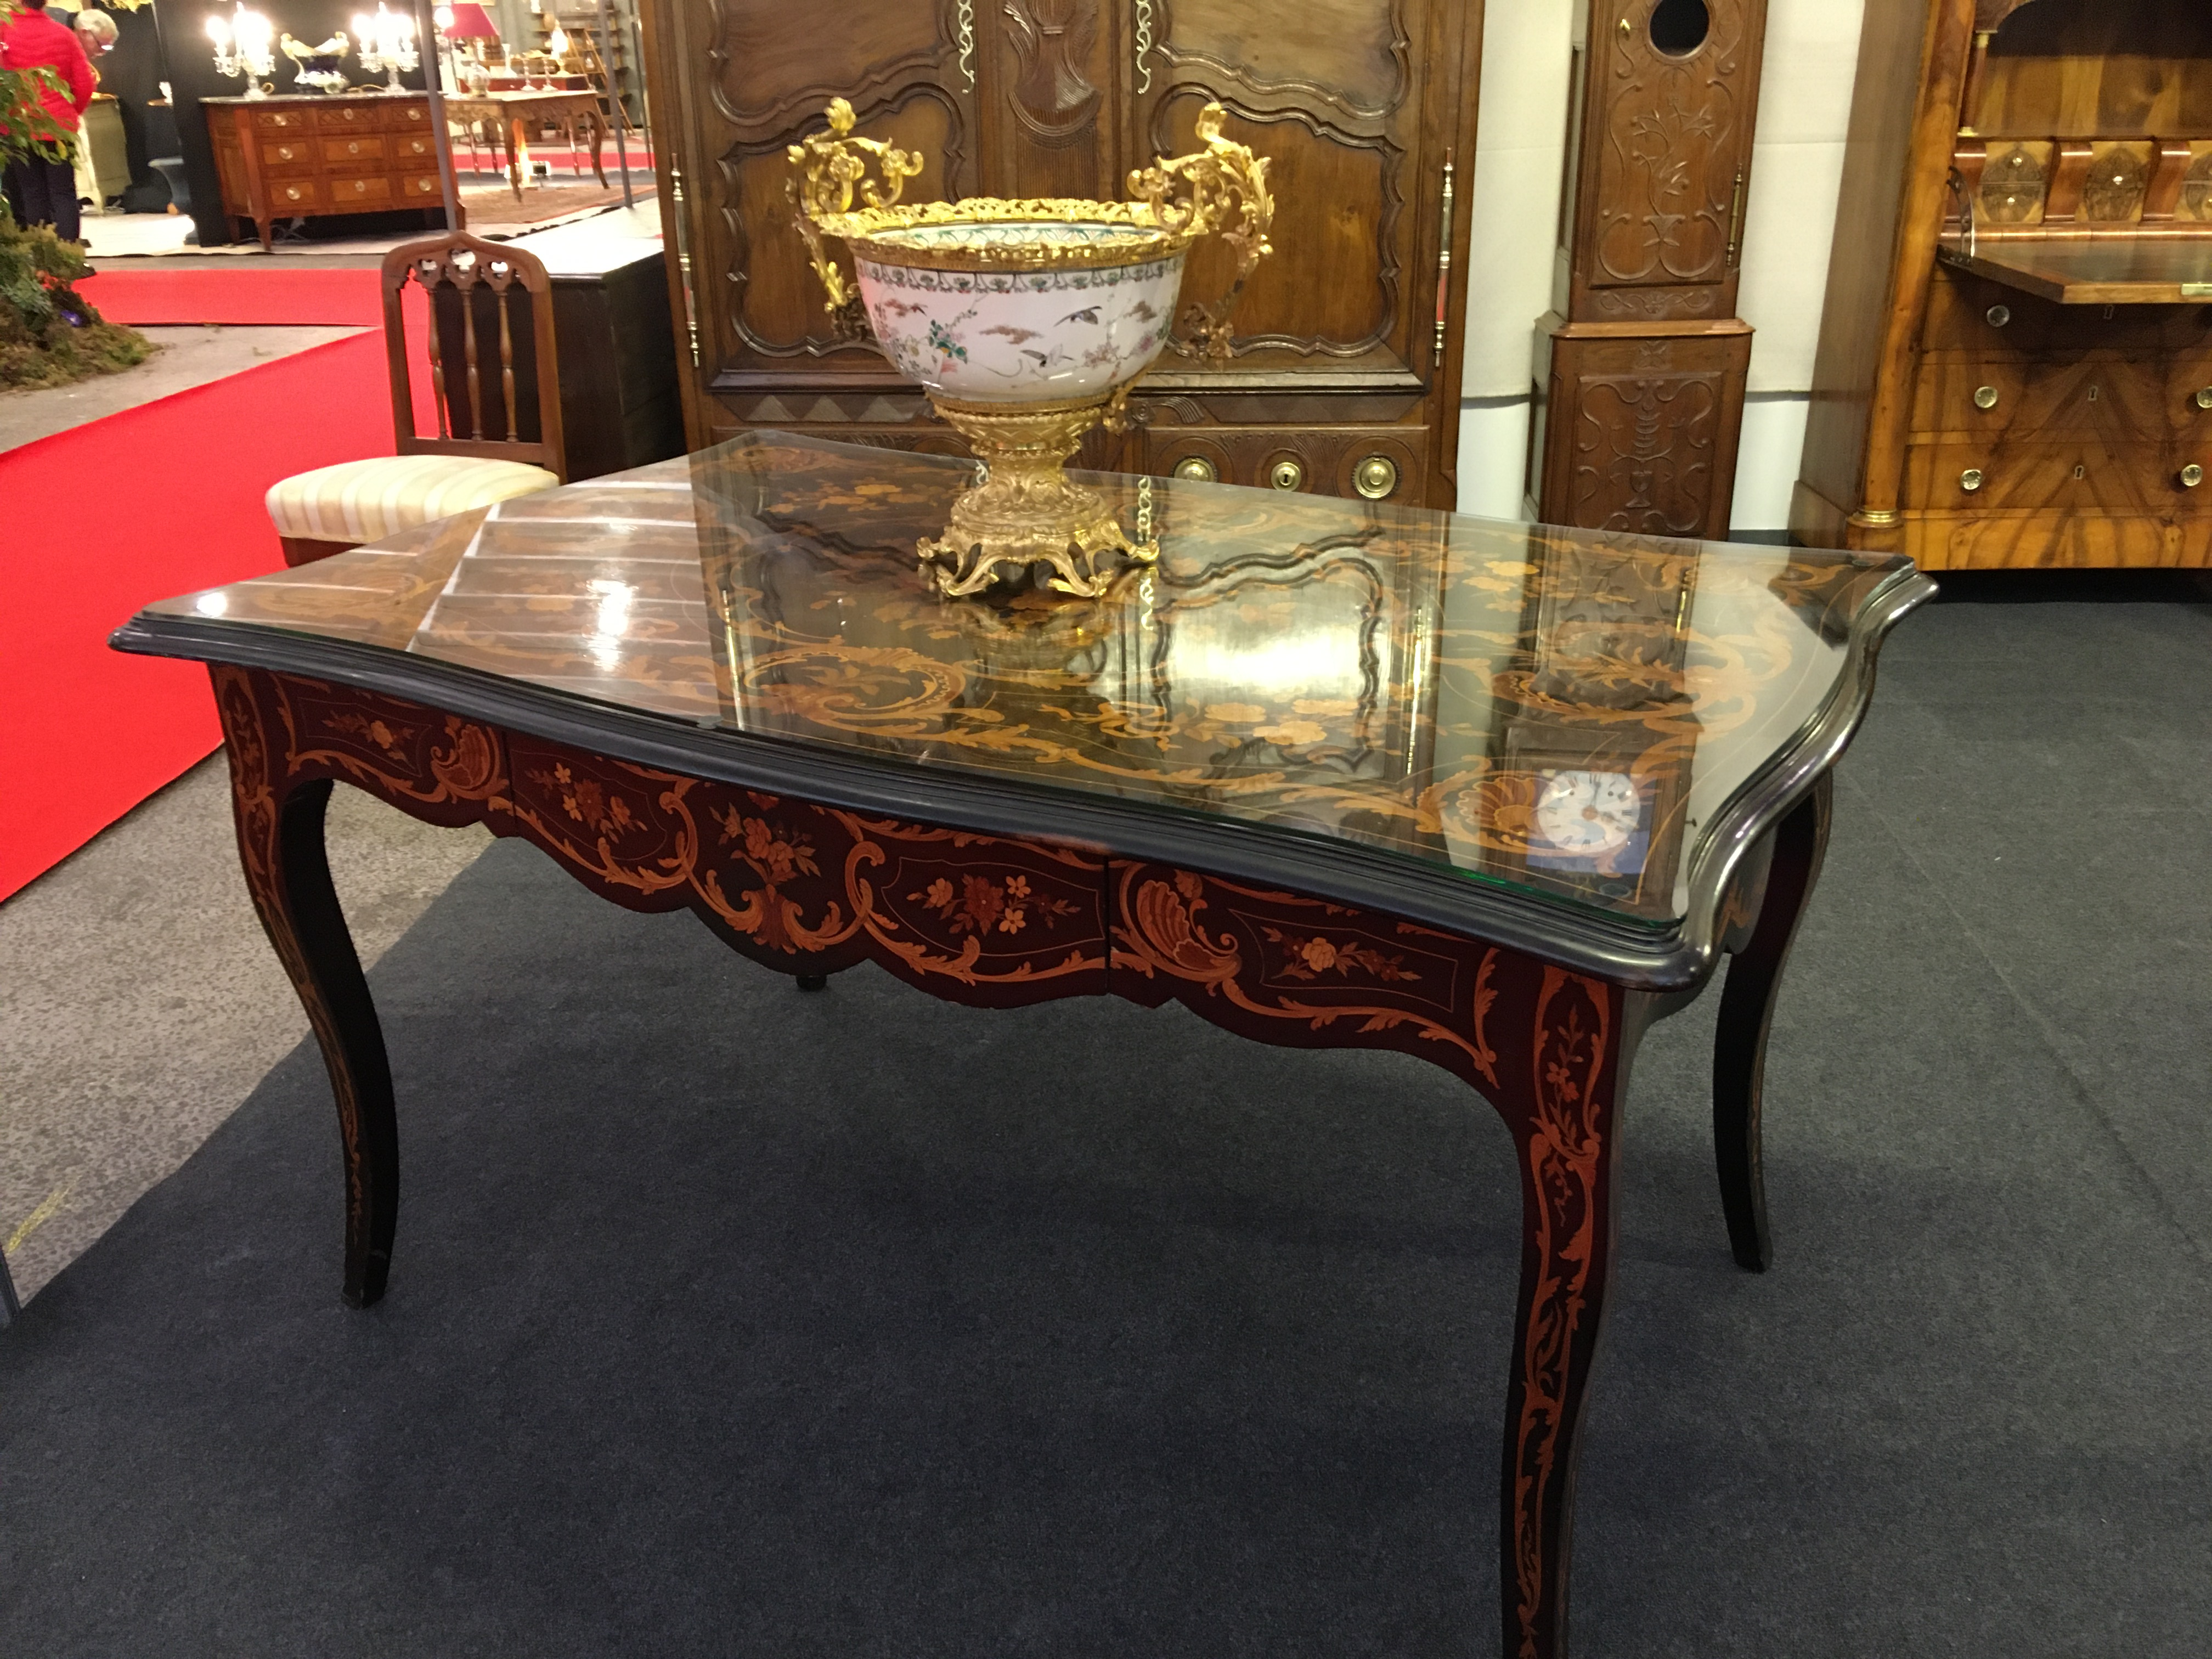 Dating a piece of furniture, your Napoli Antic antique dealer can help you